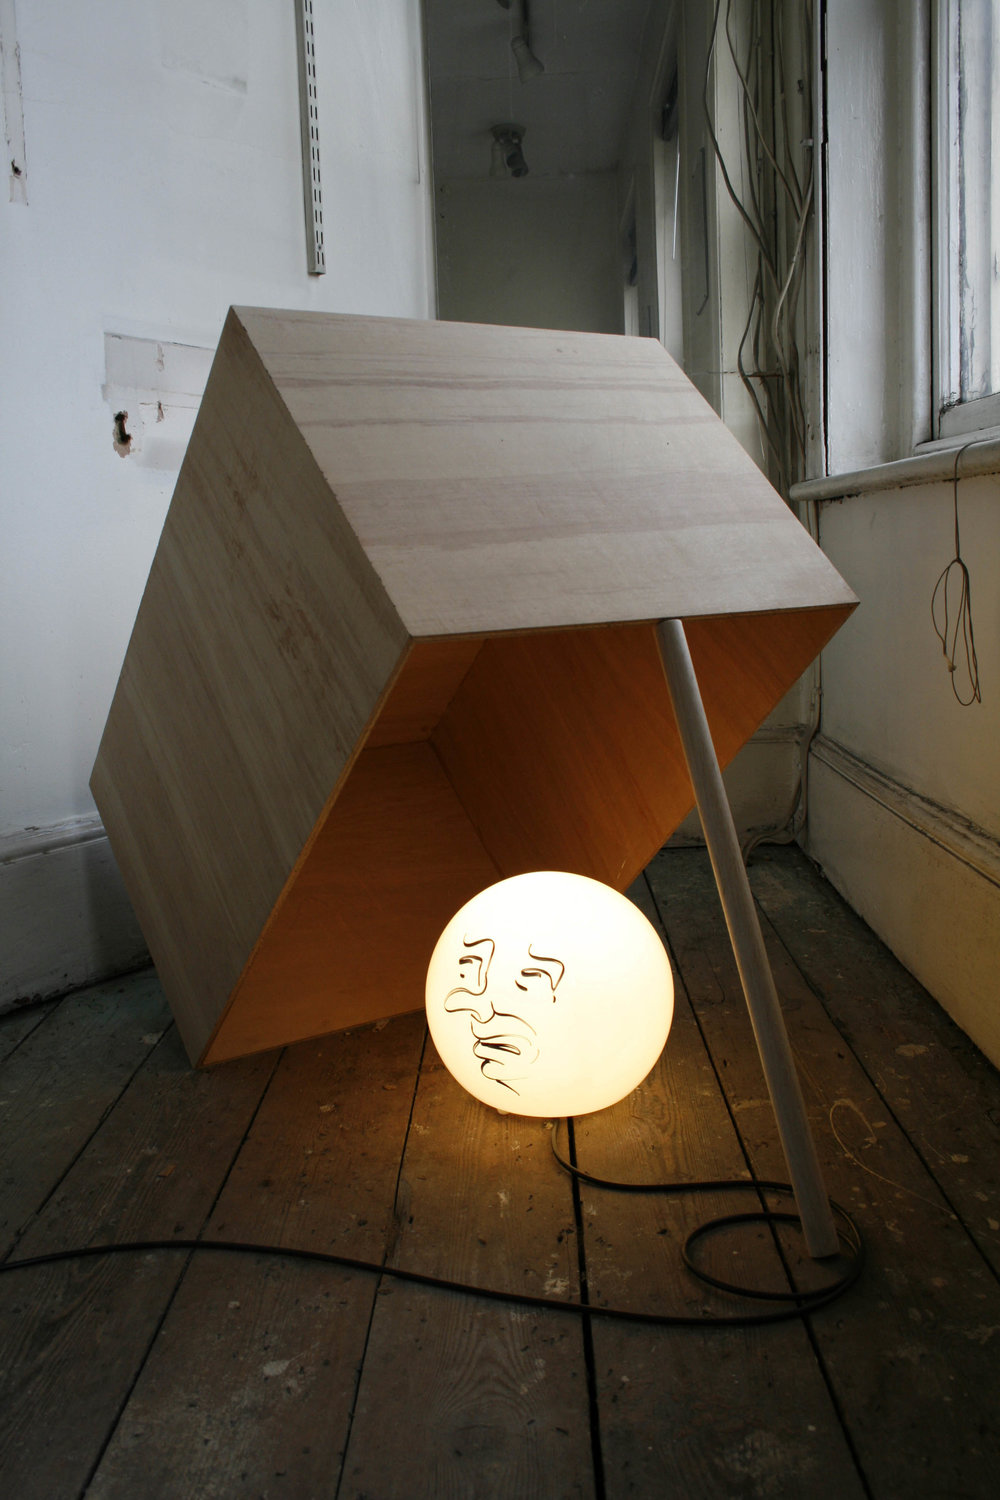 Sam Porritt, Looking For Trouble, 2009. Glass Lamp, Marker Pen, Plywood; 75 x 100 x 50 cm. Image courtesy of the artist.